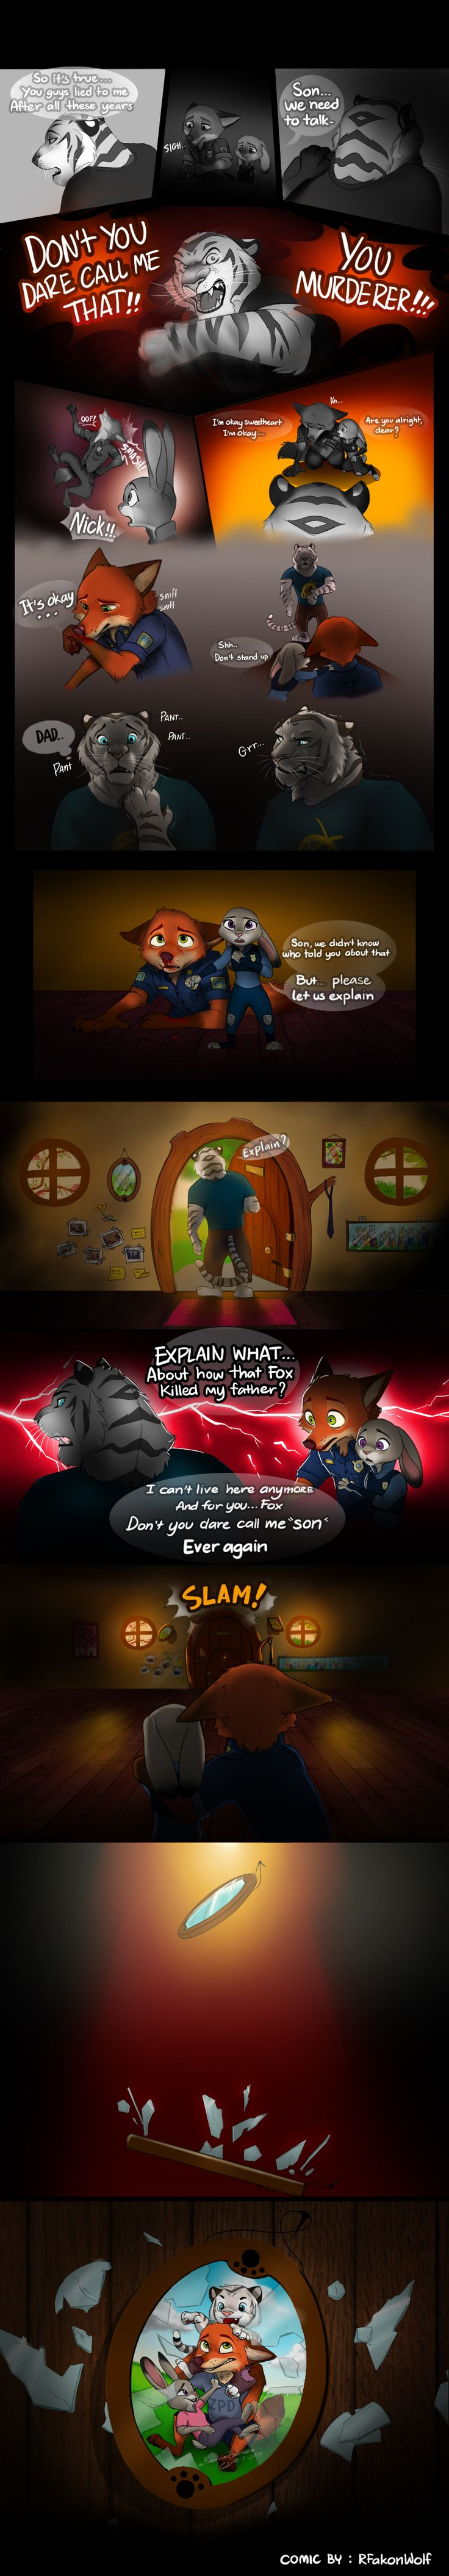 Comic: The White Tiger (by RFakonWolf) - Zootopia News Network